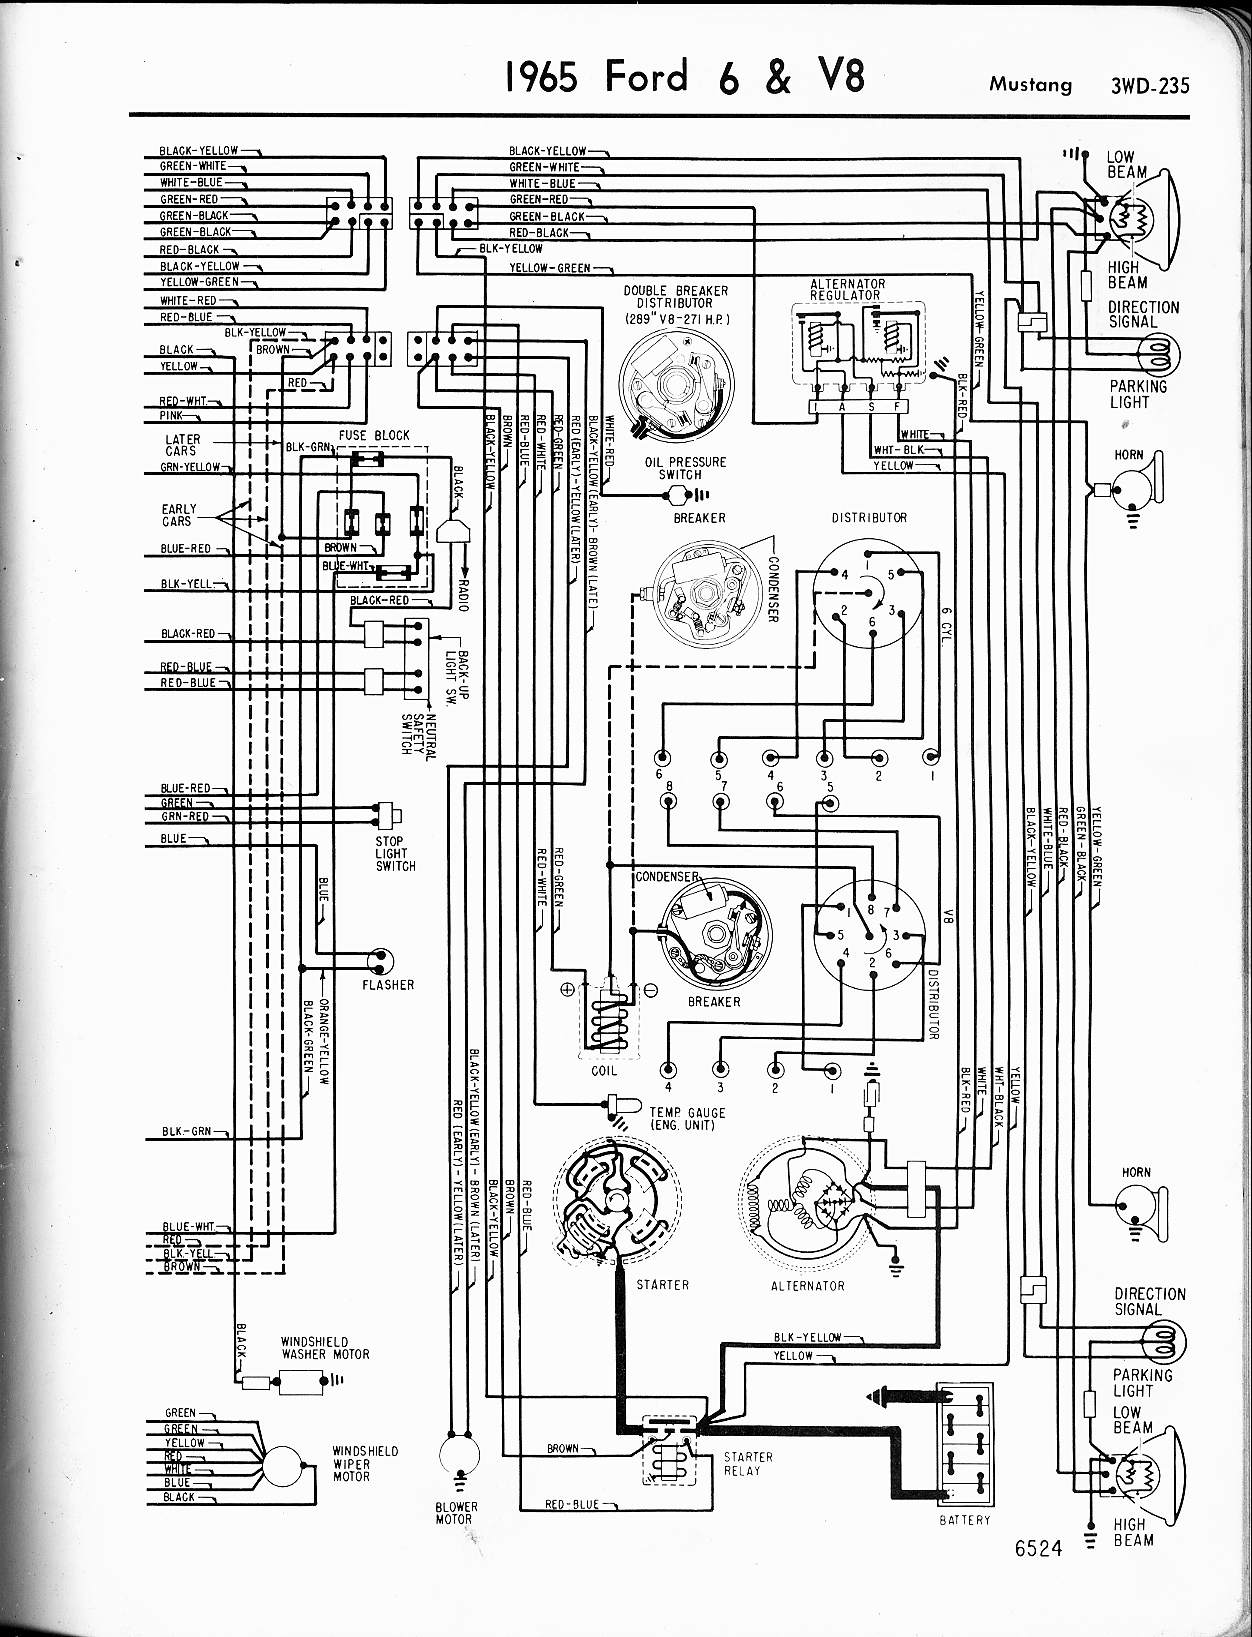 hight resolution of 69 thunderbird wiring diagram wiring diagrams scematic69 thunderbird wiring diagram wiring diagram todays 61 thunderbird 1969